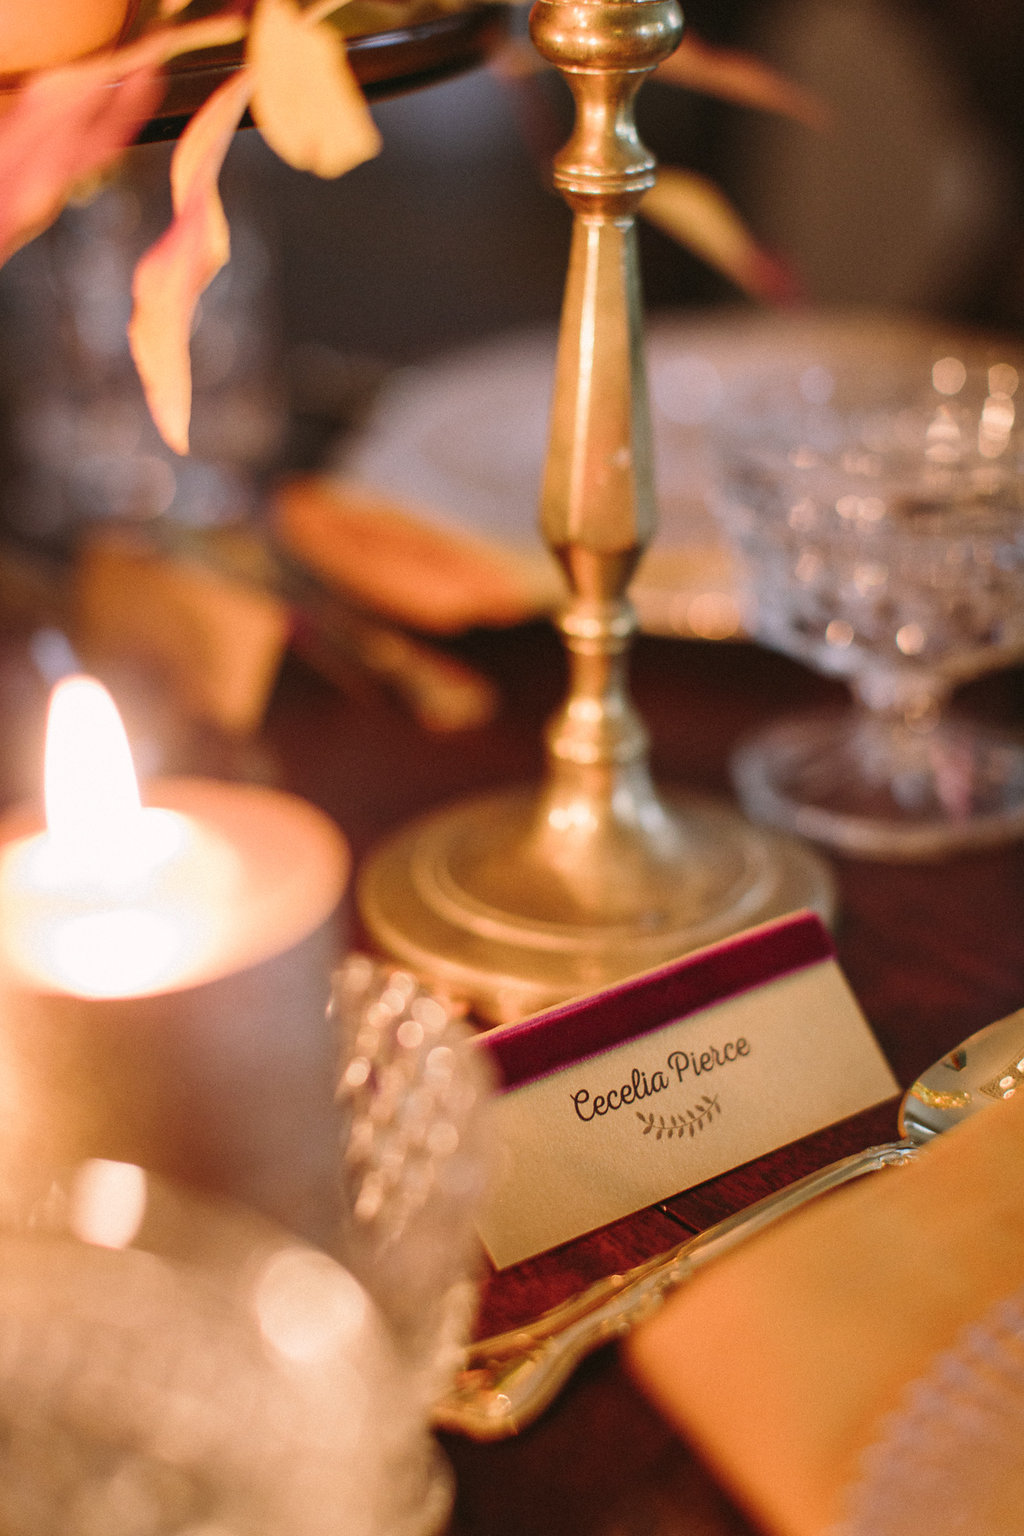 MeetingHouseMeetUp_Gold_Pink_Burgundy_Romantic-Place-cards.jpg